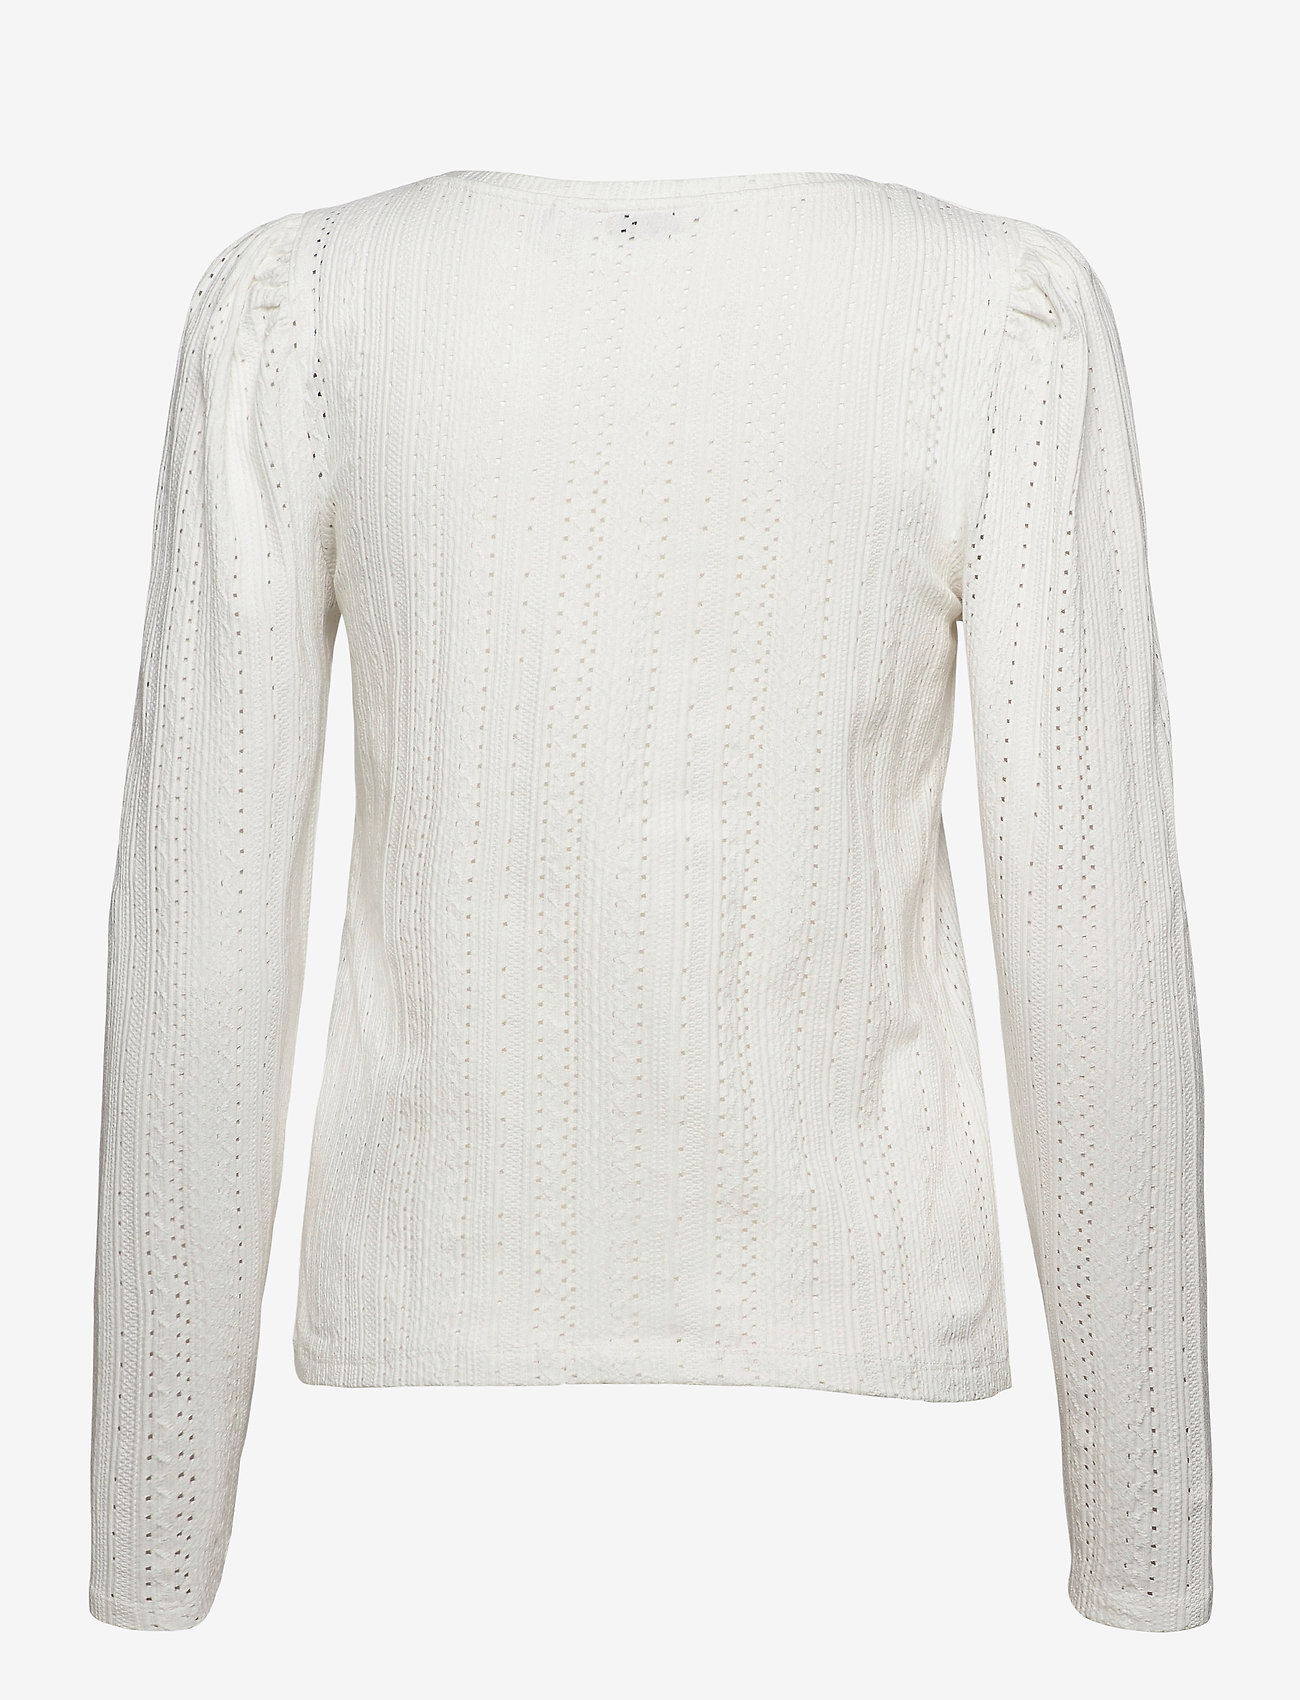 b.young - BYPIANNA LACE TSHIRT - - langærmede toppe - off white - 1